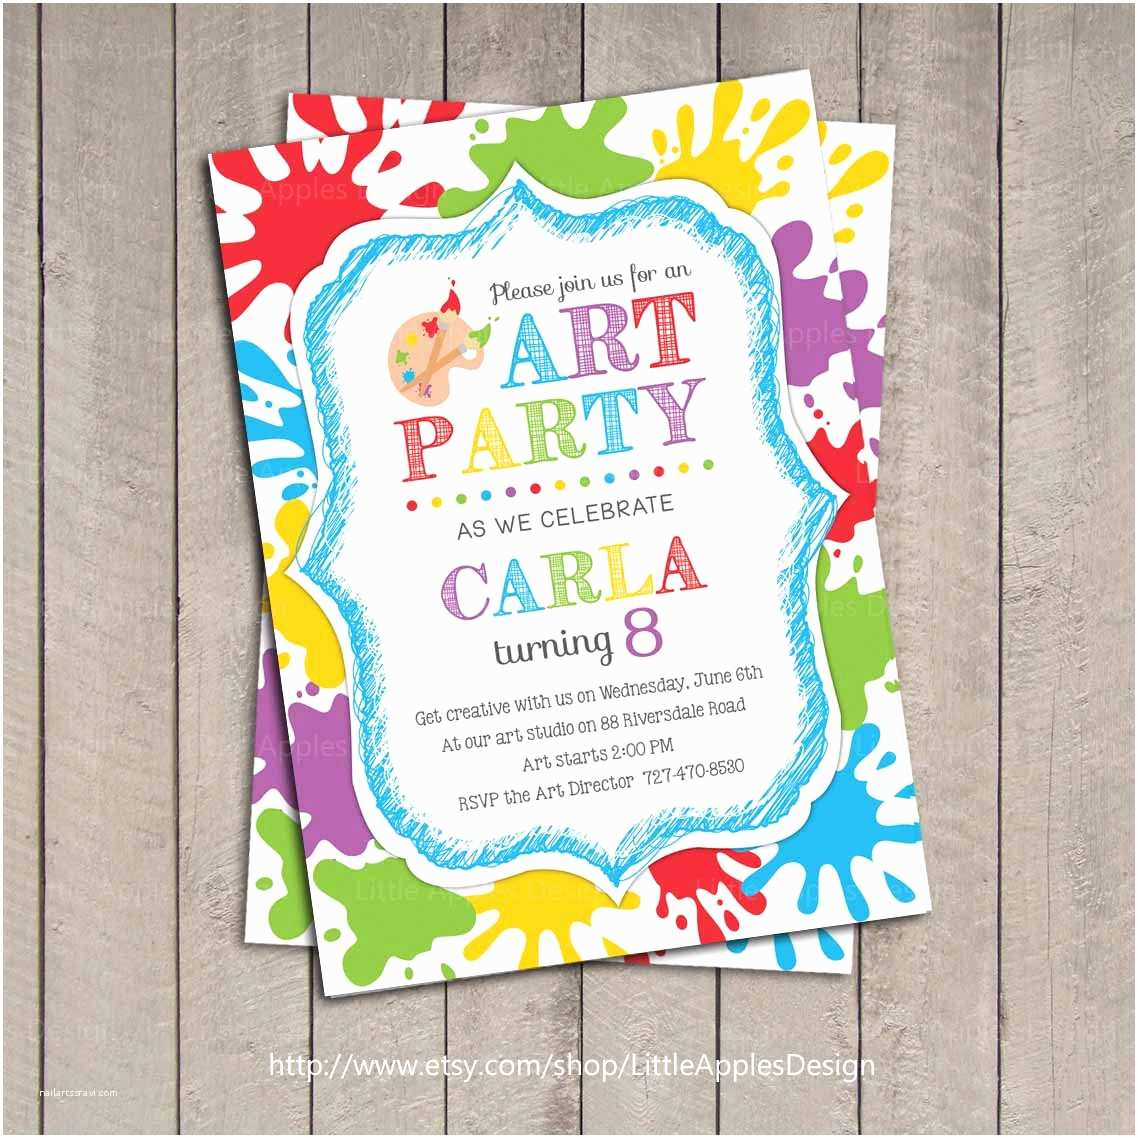 Painting Birthday Party Invitations Art Party Invitation Kids Art Party Invitation by